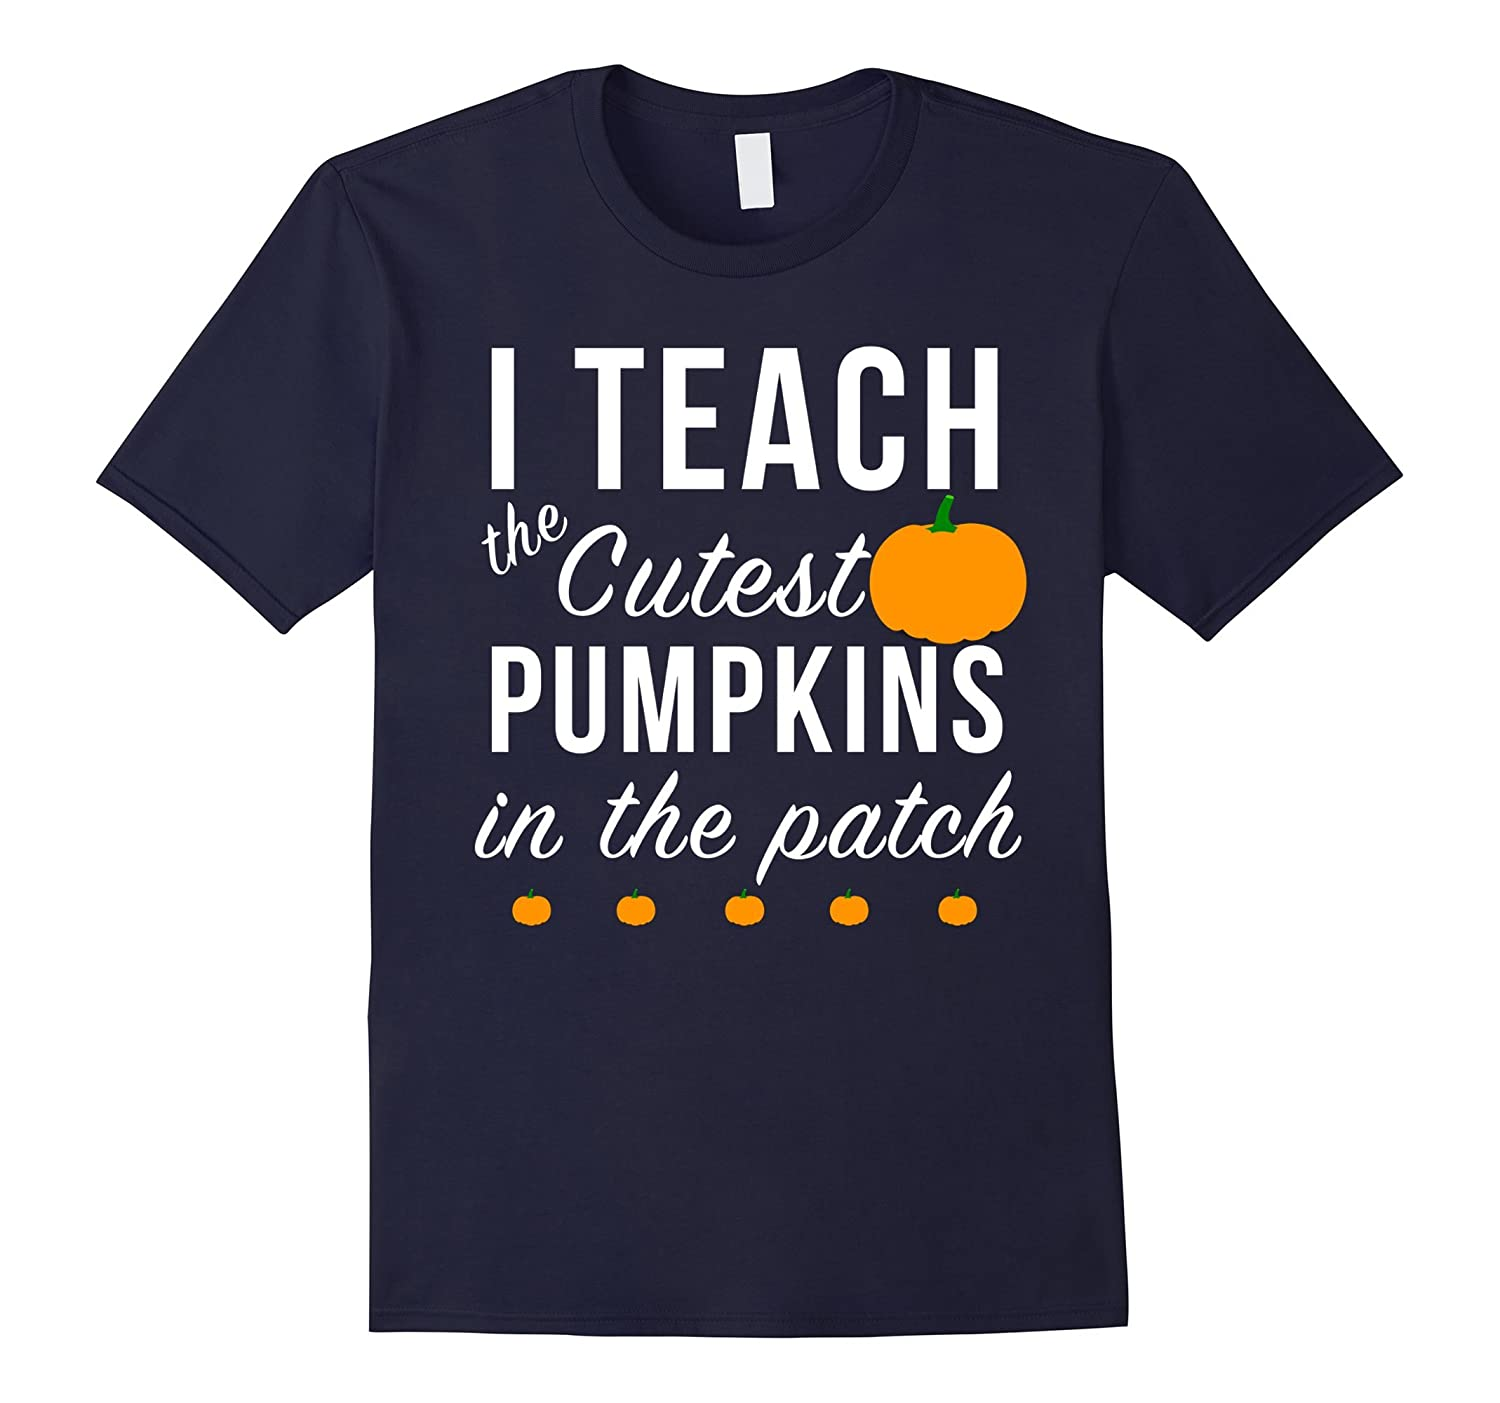 I Teach The Cutest Pumpkins In The Patch Shirt, Funny Tee-T-Shirt